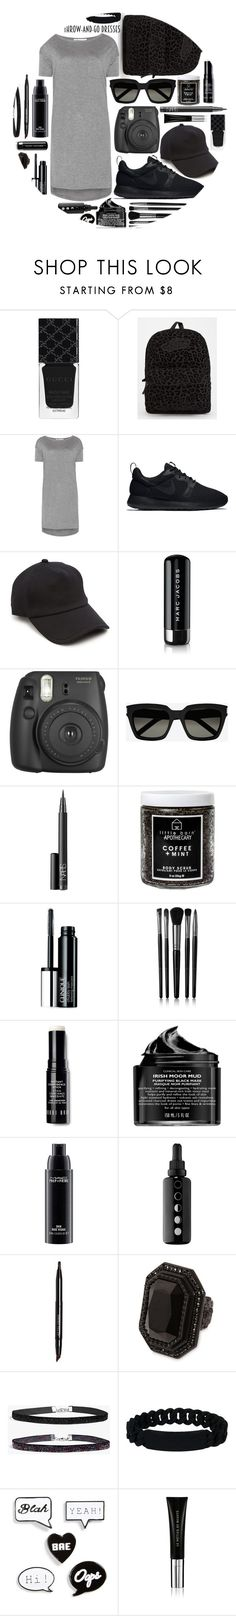 """Throw and Go Dress: Contest Entry"" by isquaglia ❤ liked on Polyvore featuring Gucci, Vans, T By Alexander Wang, NIKE, rag & bone, Marc Jacobs, Fujifilm, Yves Saint Laurent, NARS Cosmetics and Little Barn Apothecary"